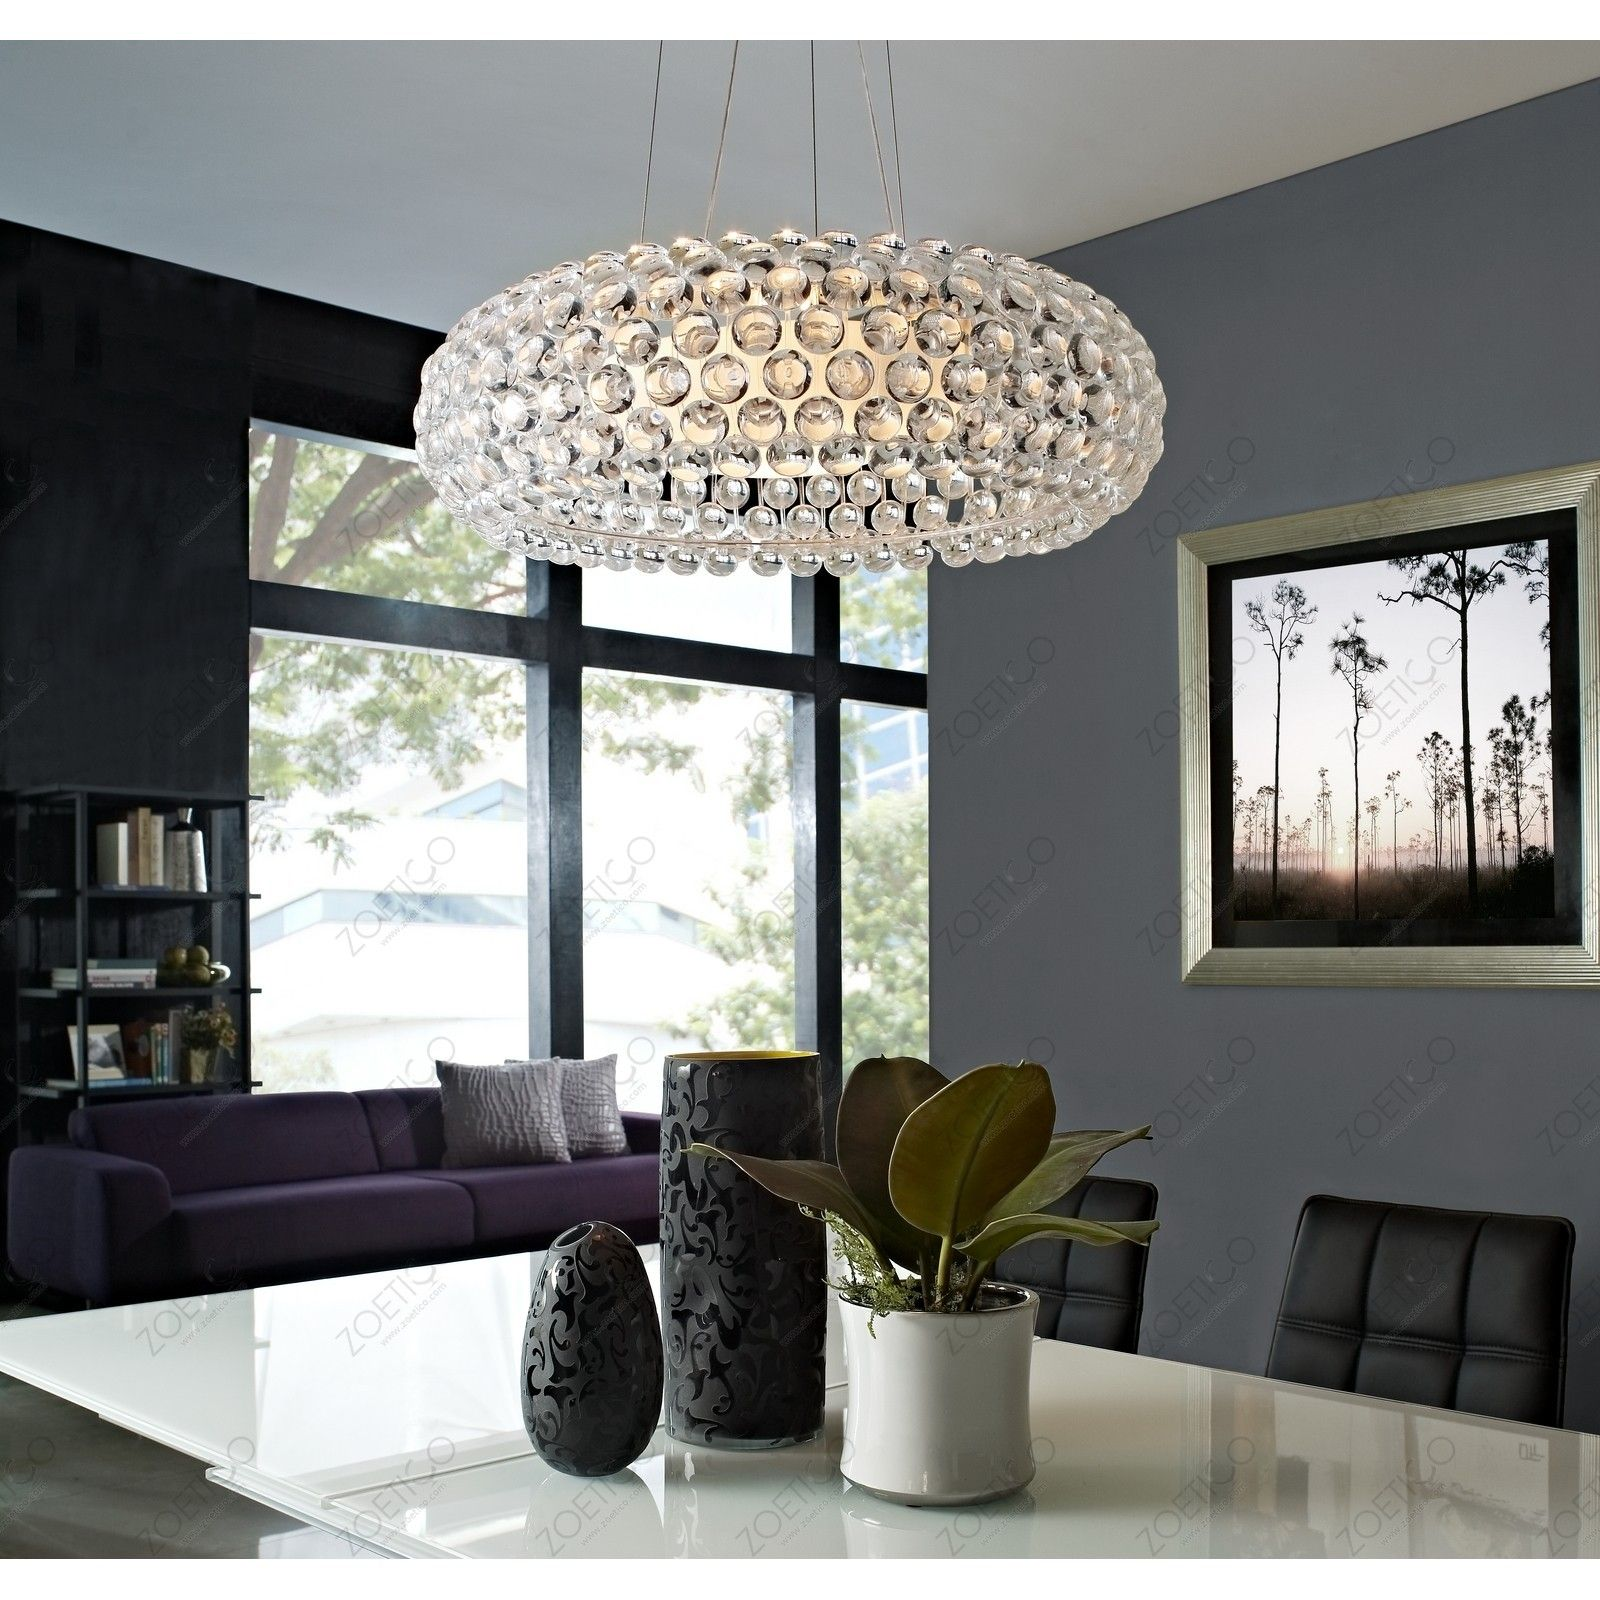 chandeliers and pendant lighting. Halo Acrylic Crystal Chandelier From California Modern Classics Thinking This Could Be An Interesting Light Fixture For The Boys 4 Bedroom Chandeliers And Pendant Lighting